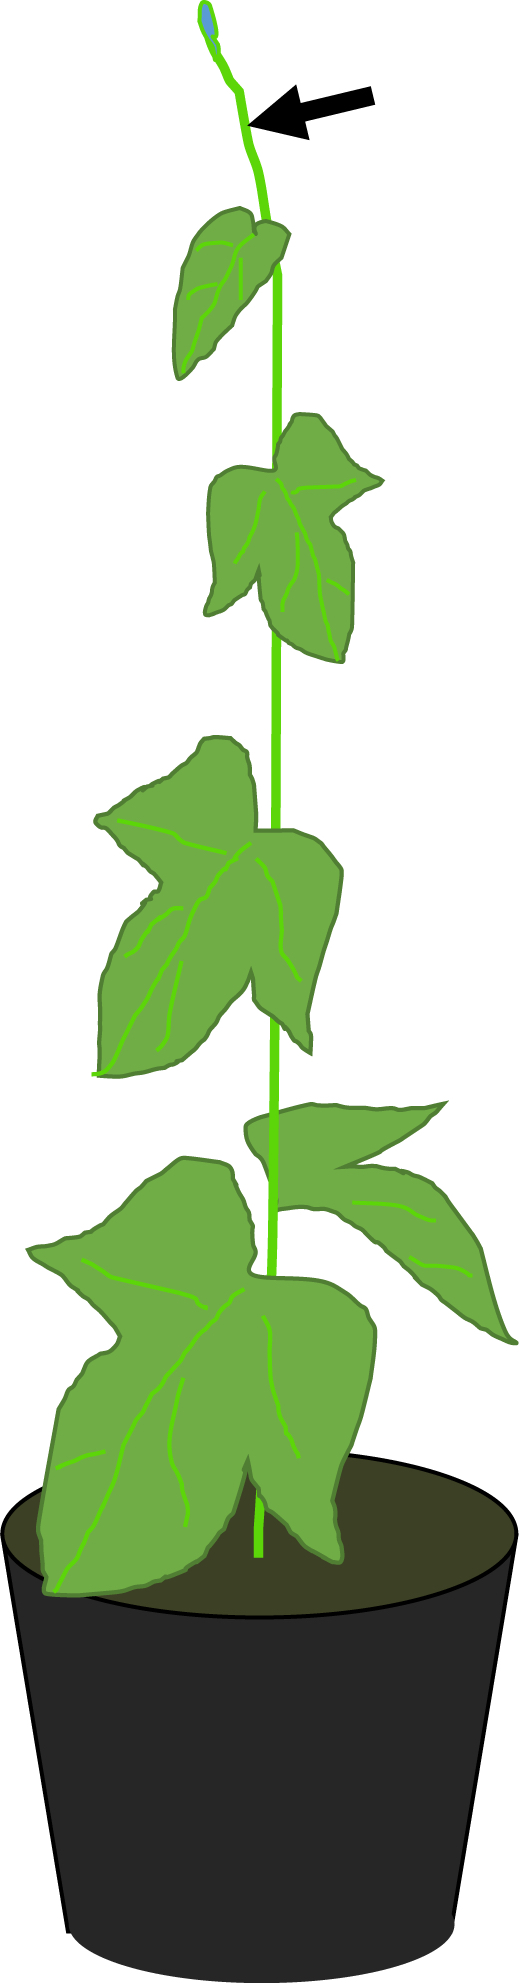 Plant Materials and Growth Conditions of Japanese Morning Glory.